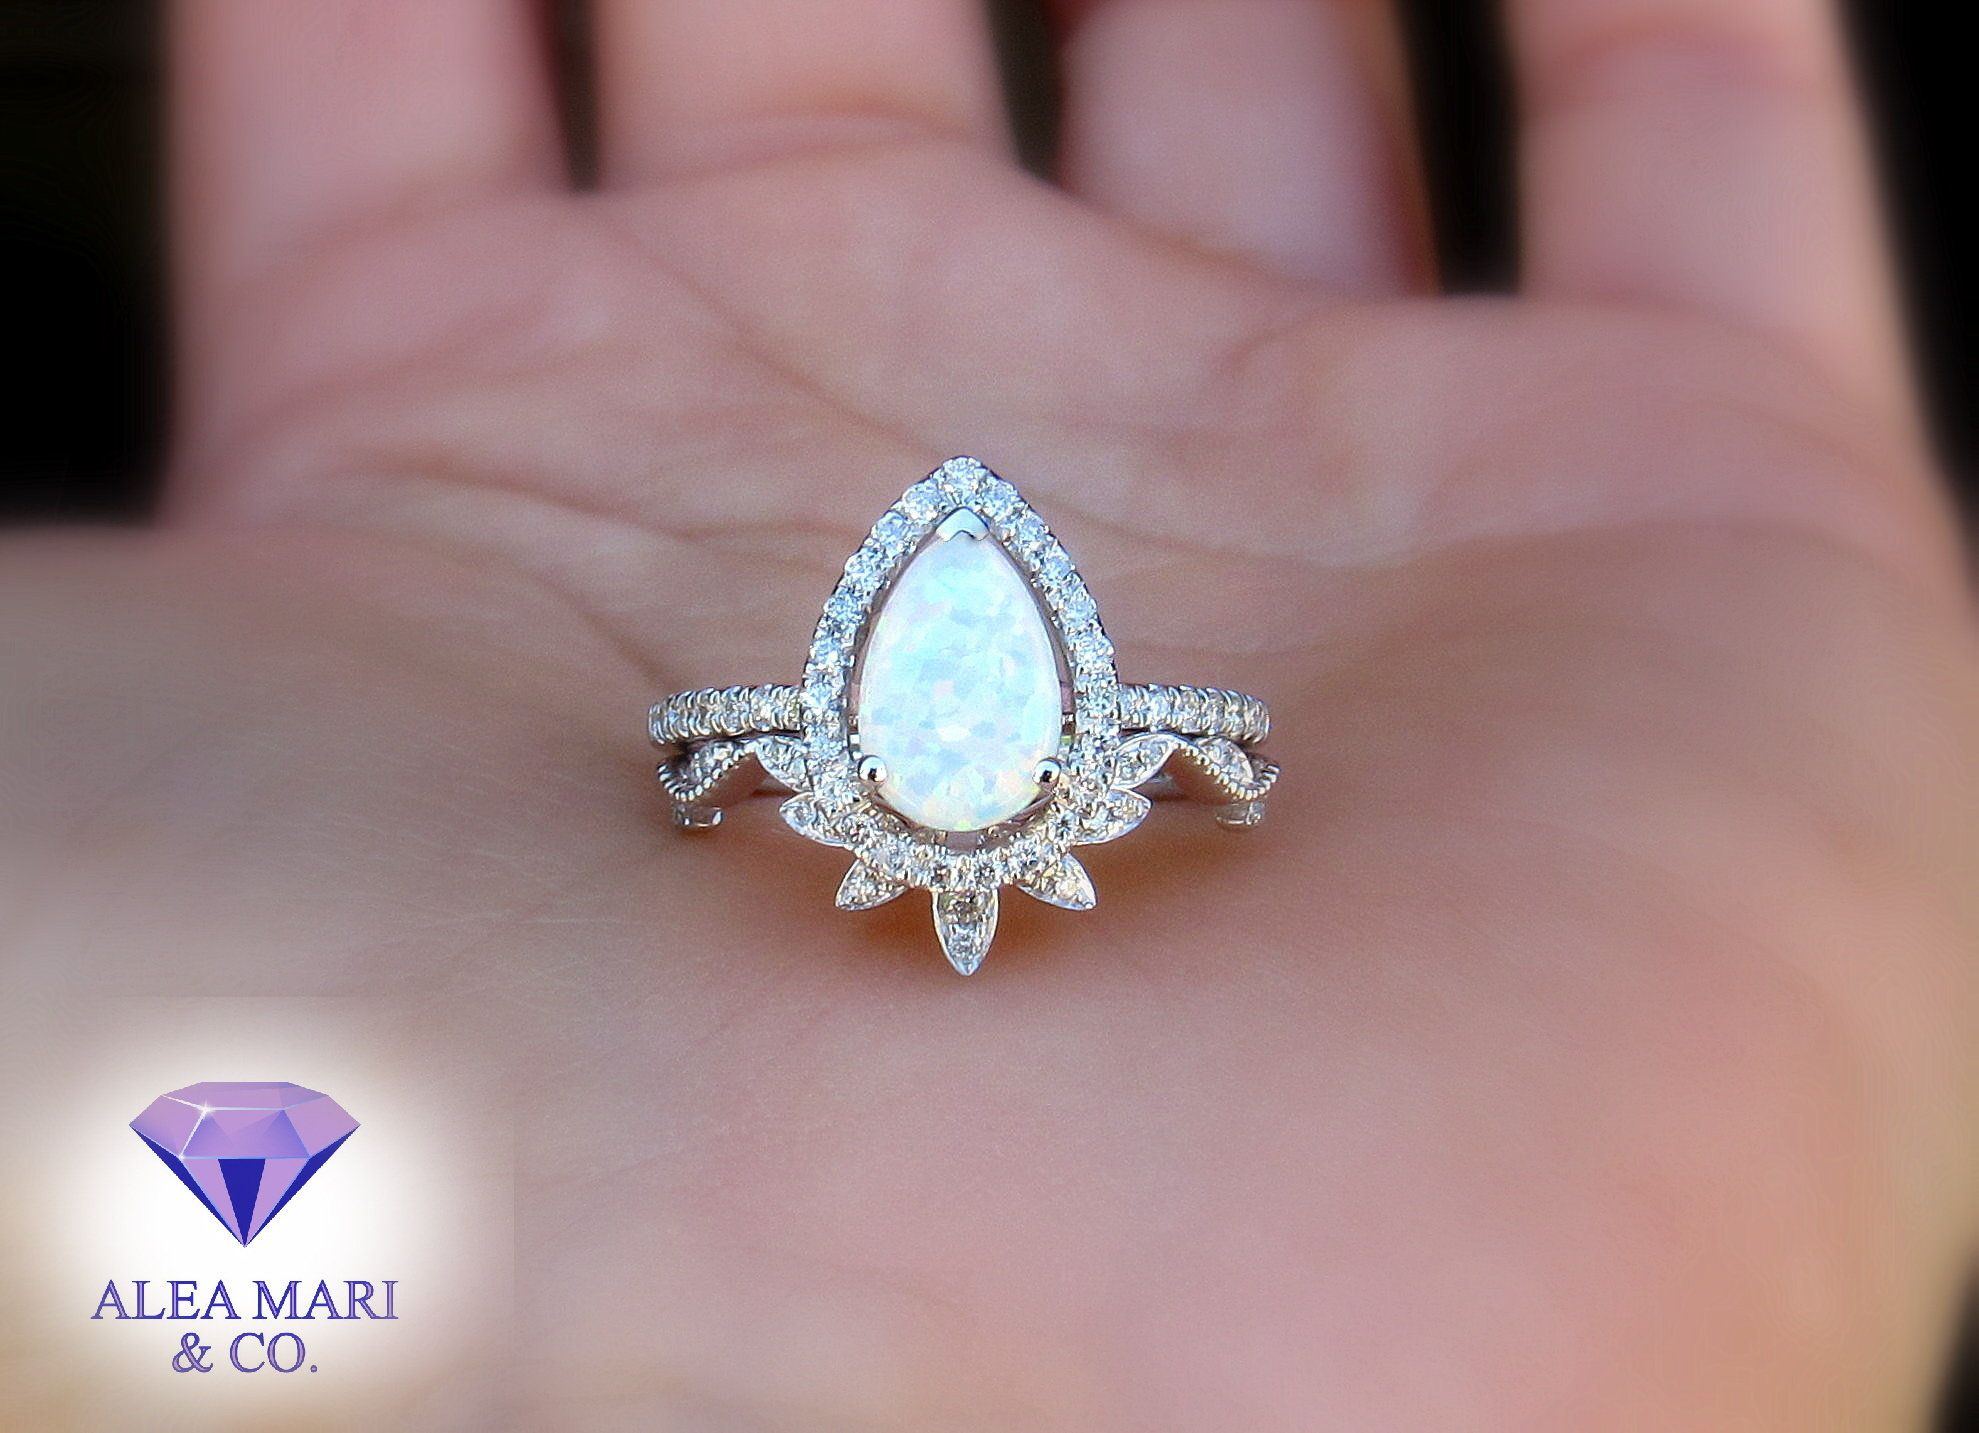 Ready to gift her. Sale low price Natural Opal Engagement Ring 925 Sterling silver stamped,engagementWedding ring All sizes